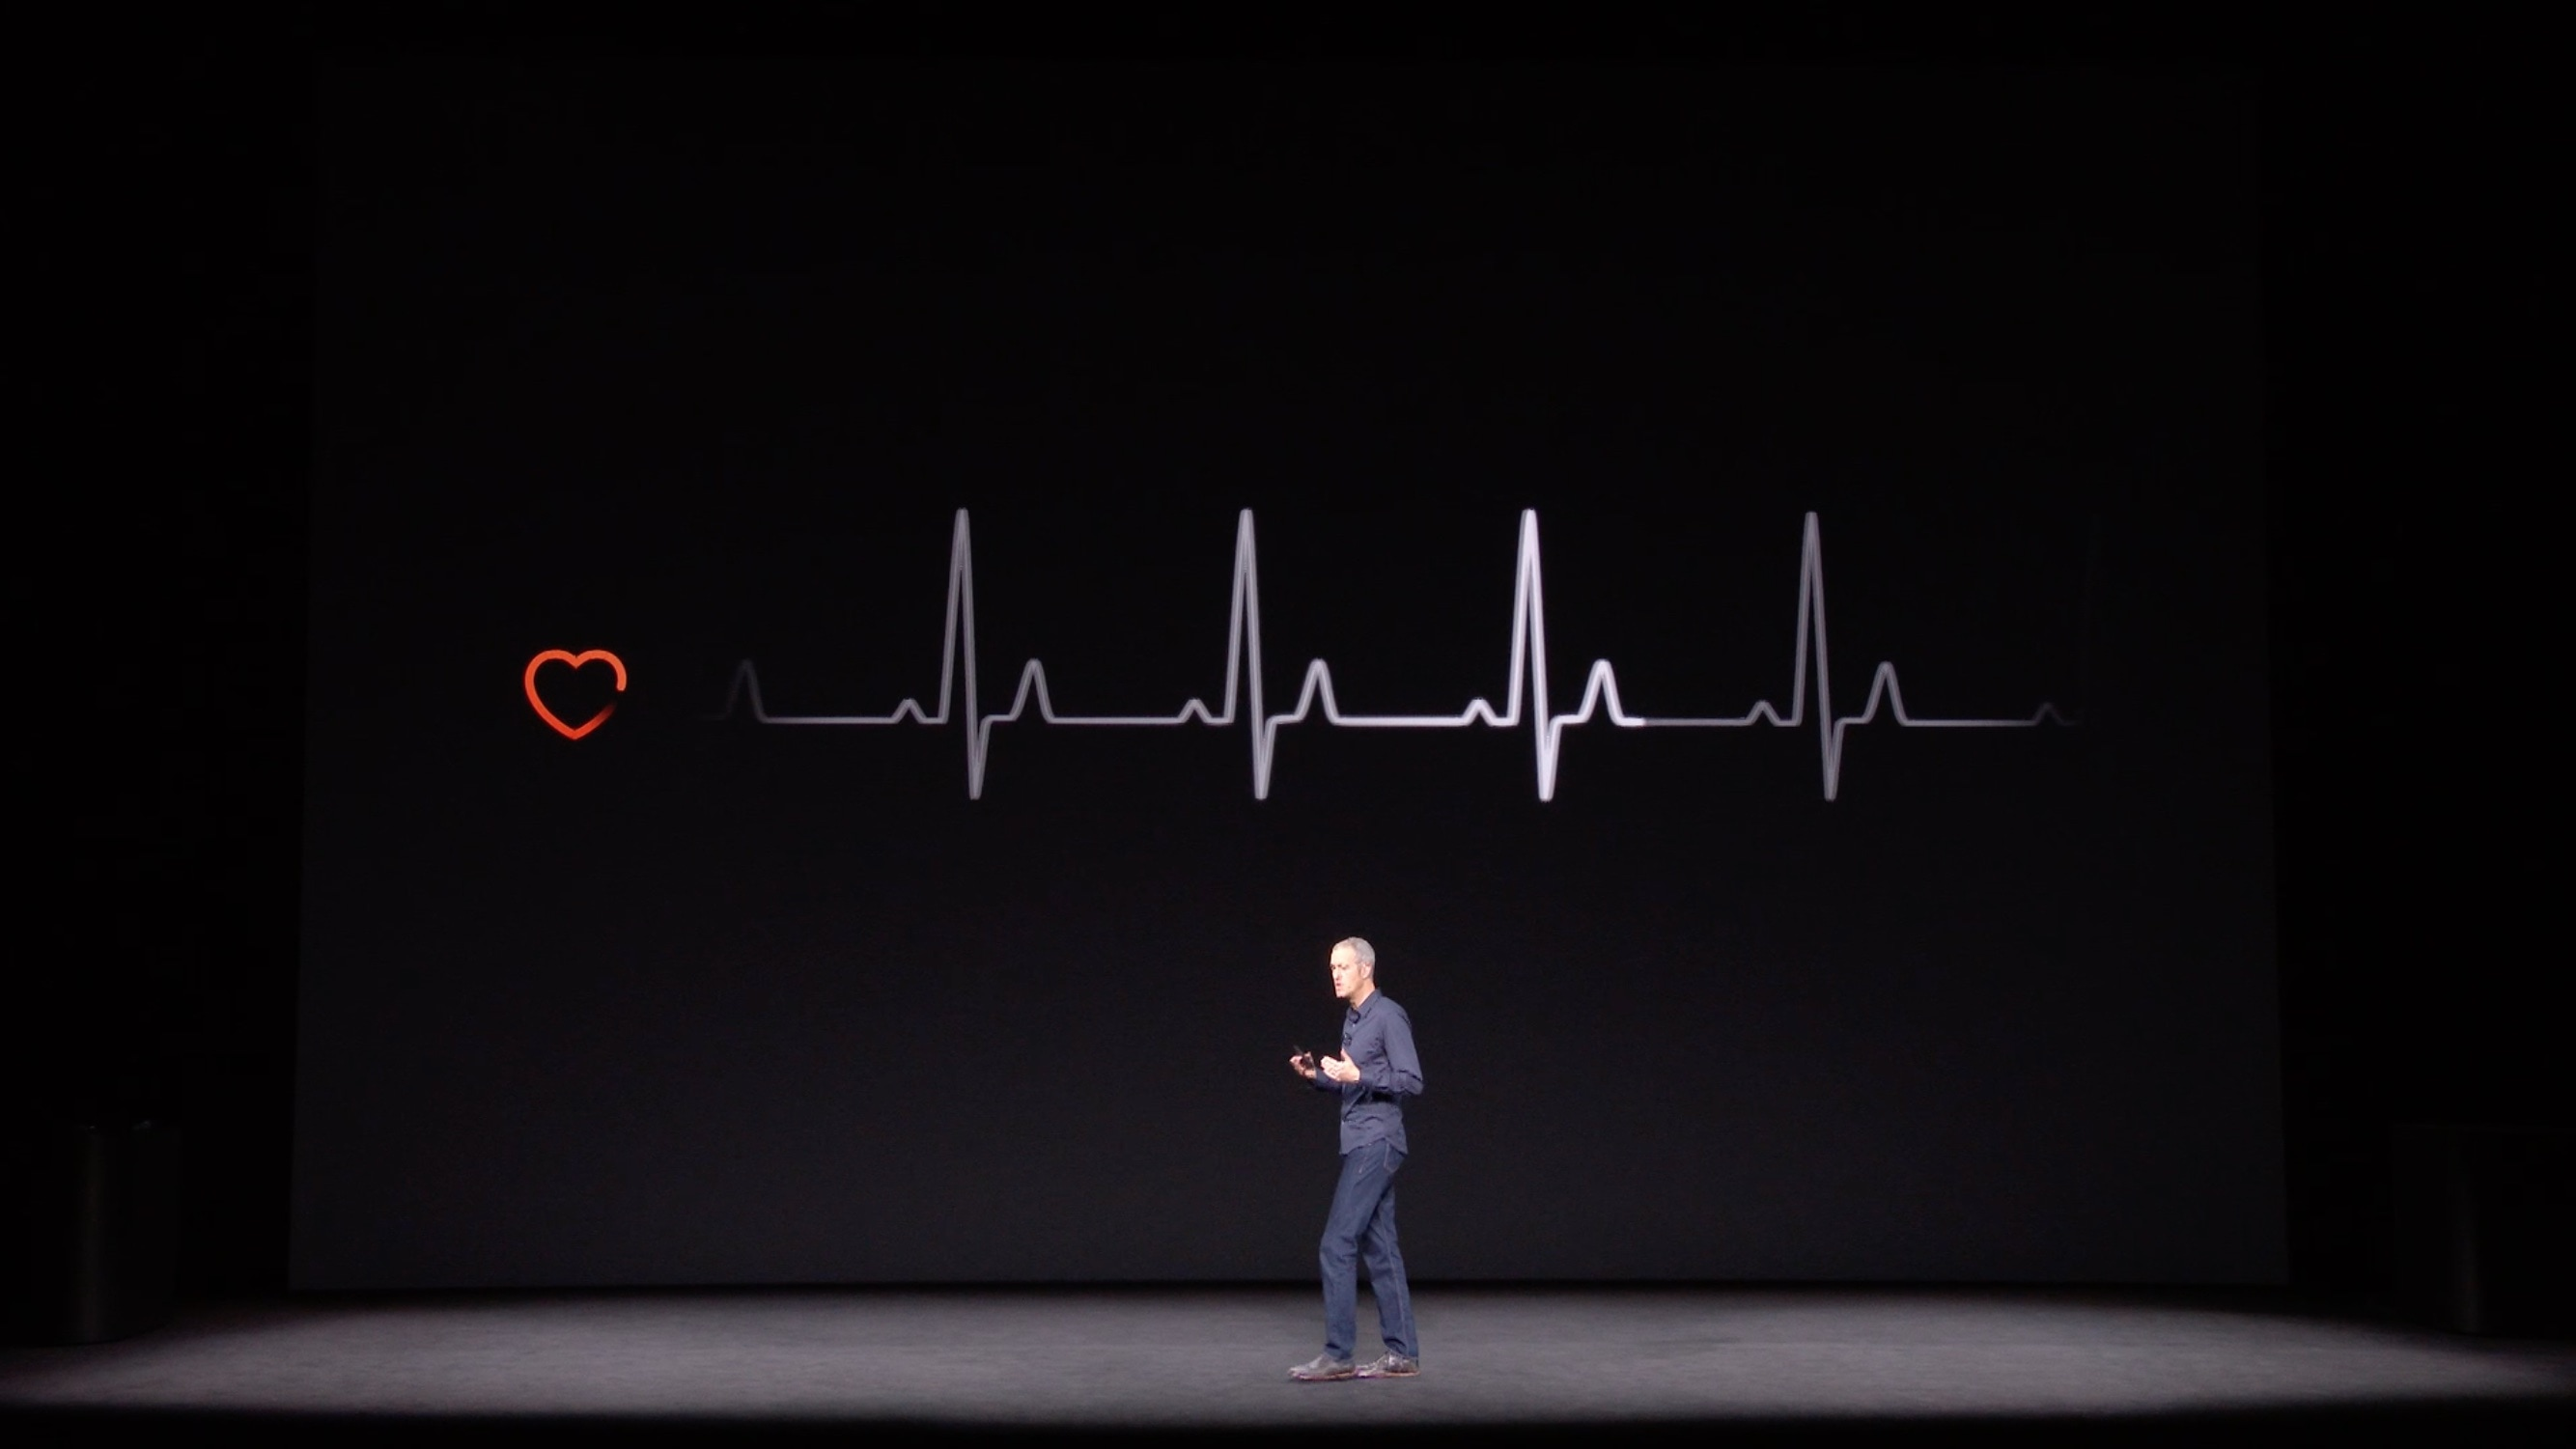 Apresentação do Apple Watch Series 3 (GPS + Cellular)